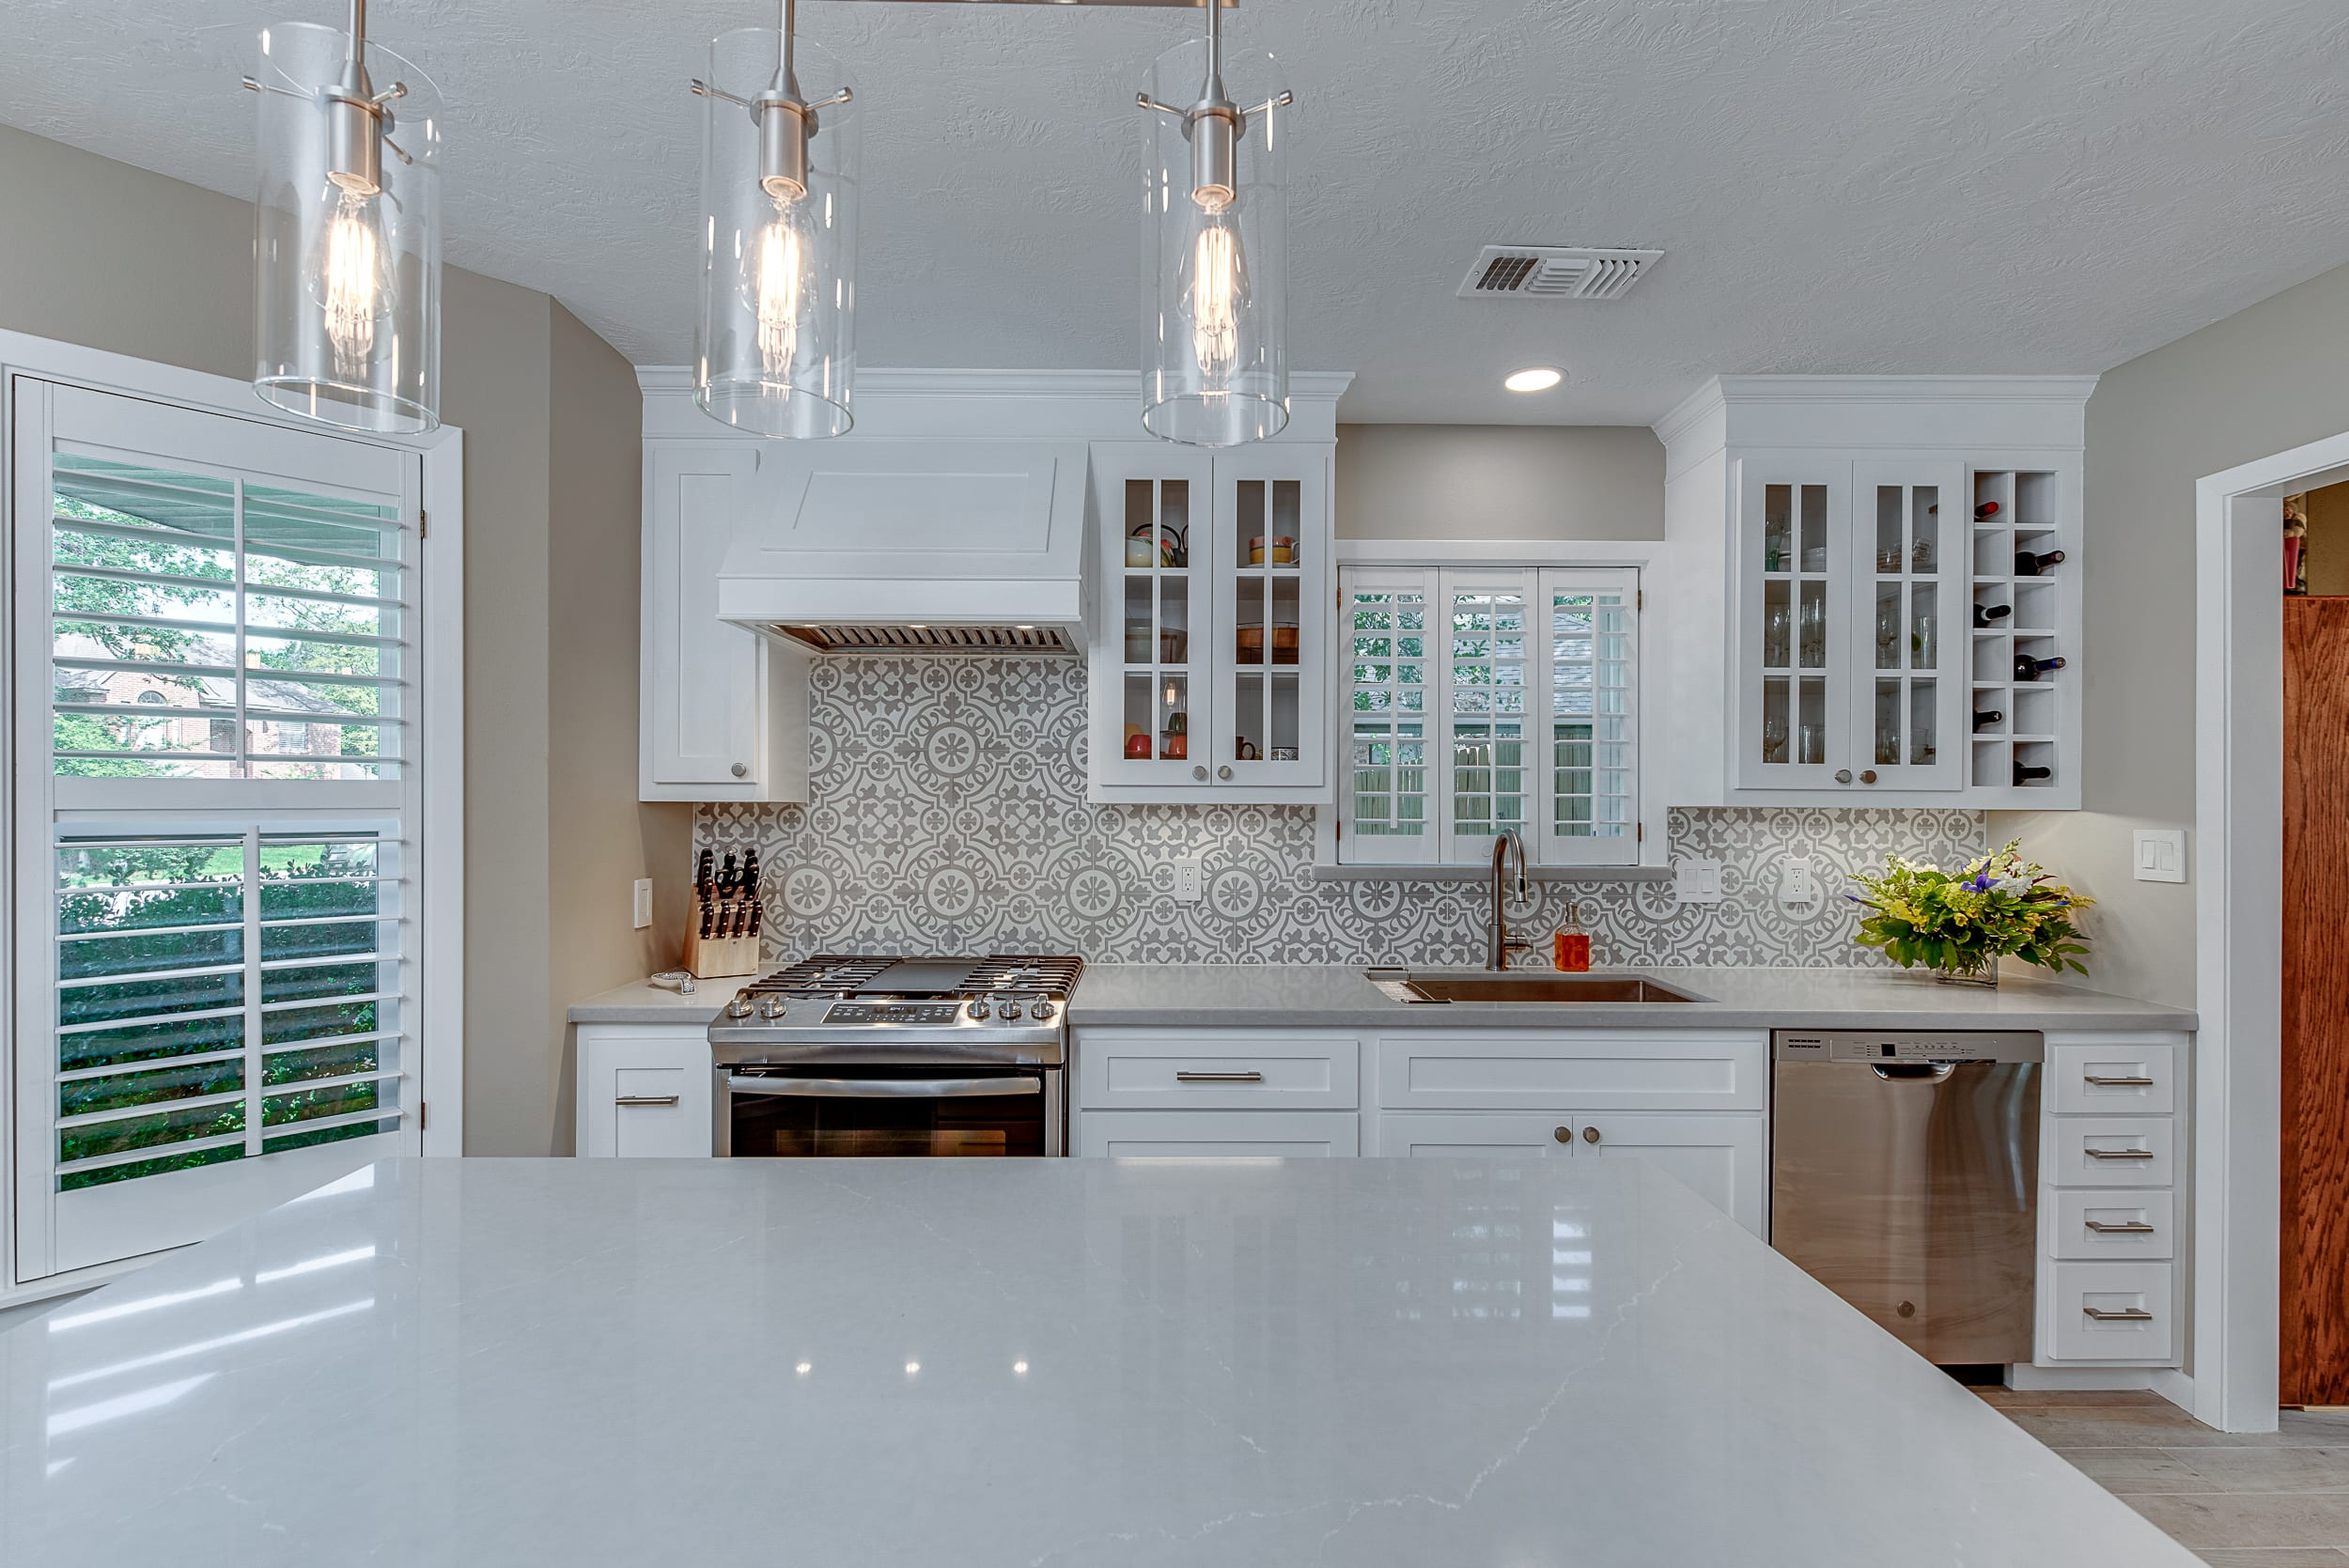 Stunning Kitchen Renovation In Bryan Texas Stearns Design Build College Station Remodeling